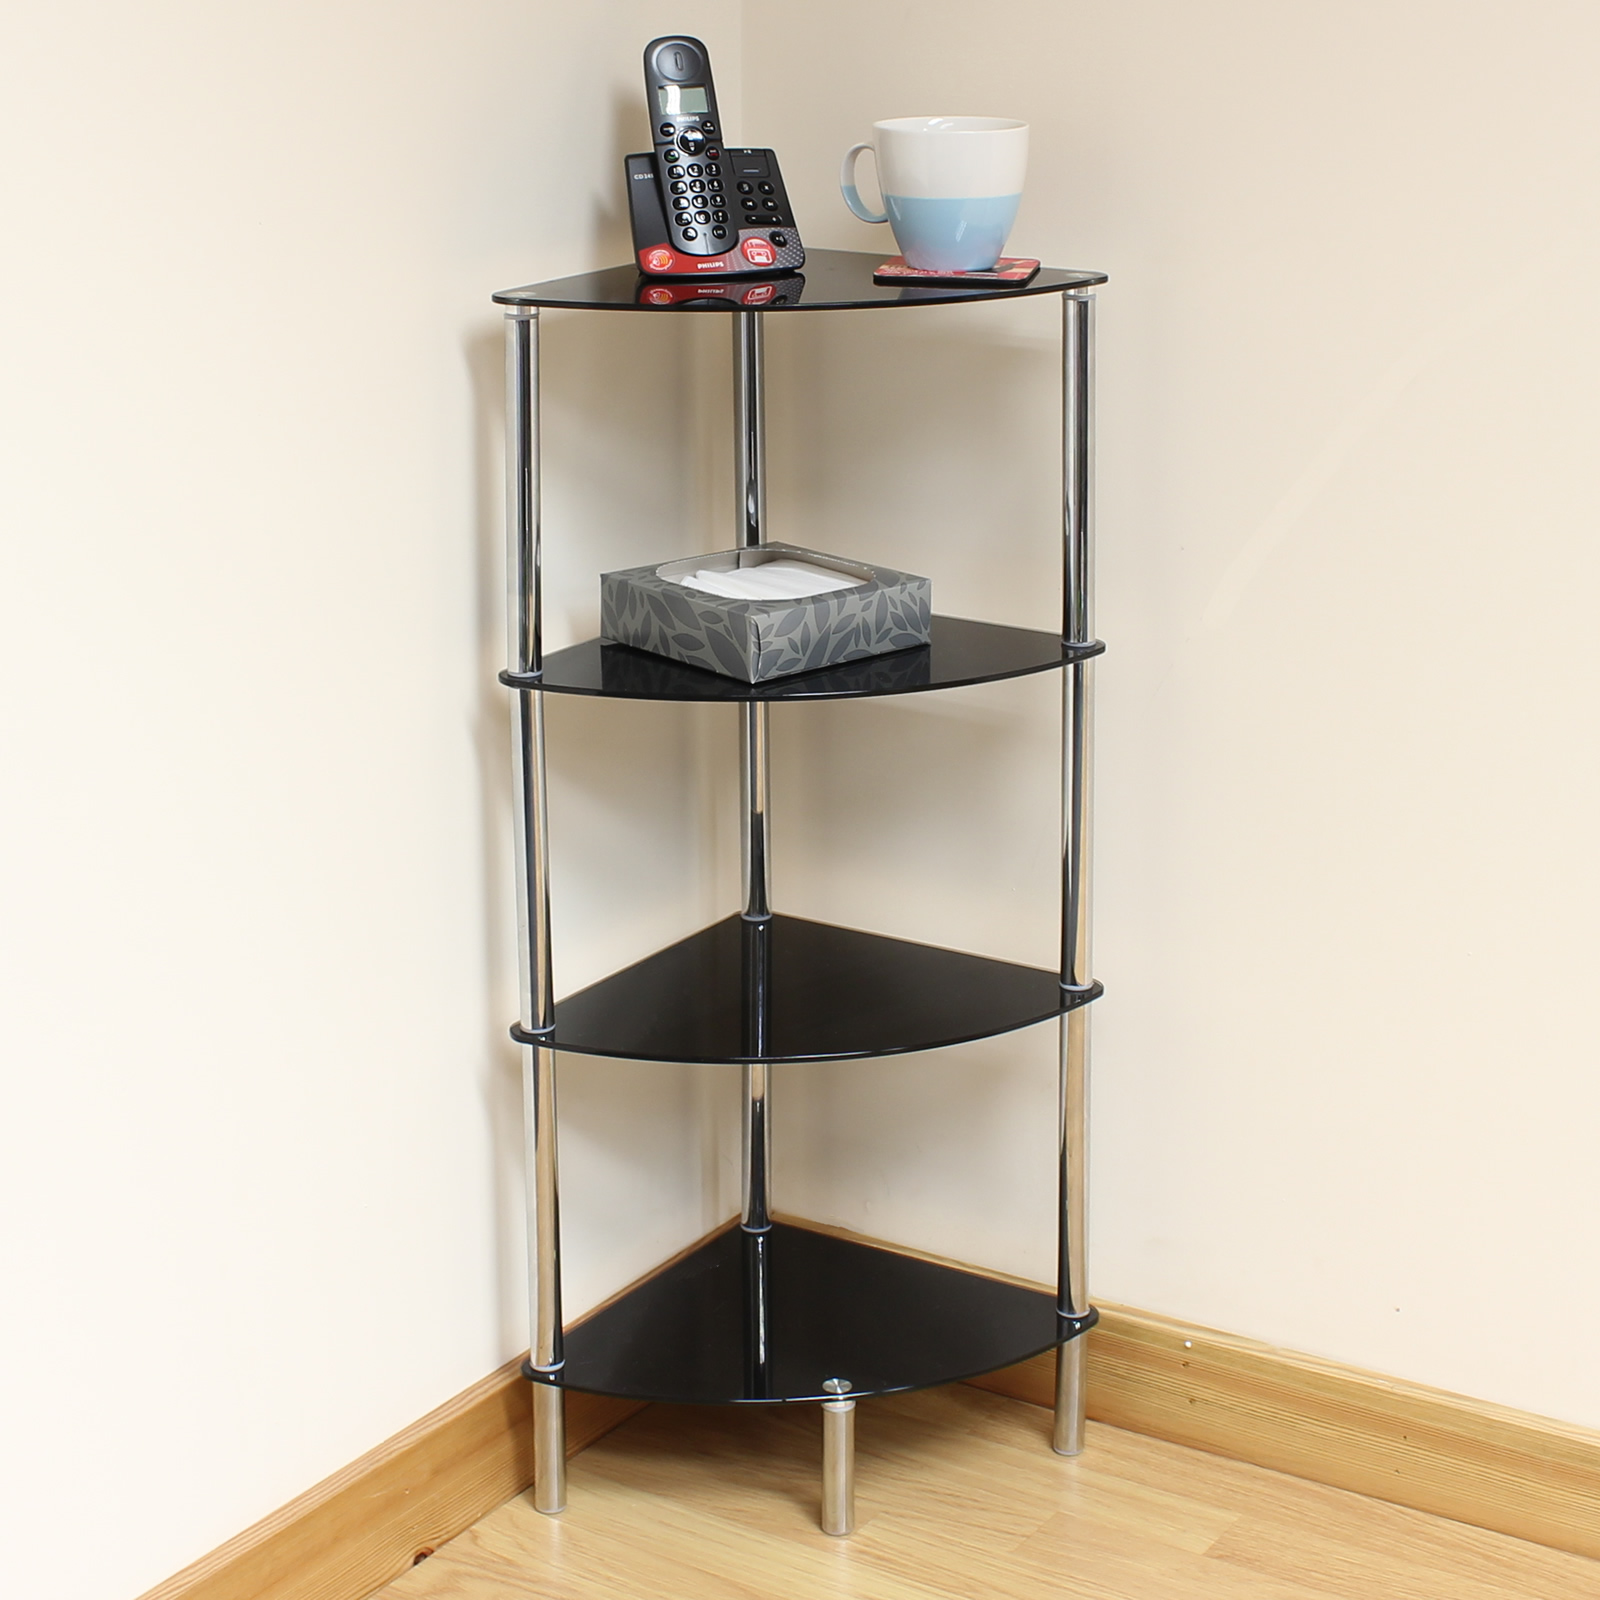 brilliant corner side table popular for hallway with small accent hartley tier black glass end shelf display unit sentinel lounge ikea storage white oak australium triangle chest